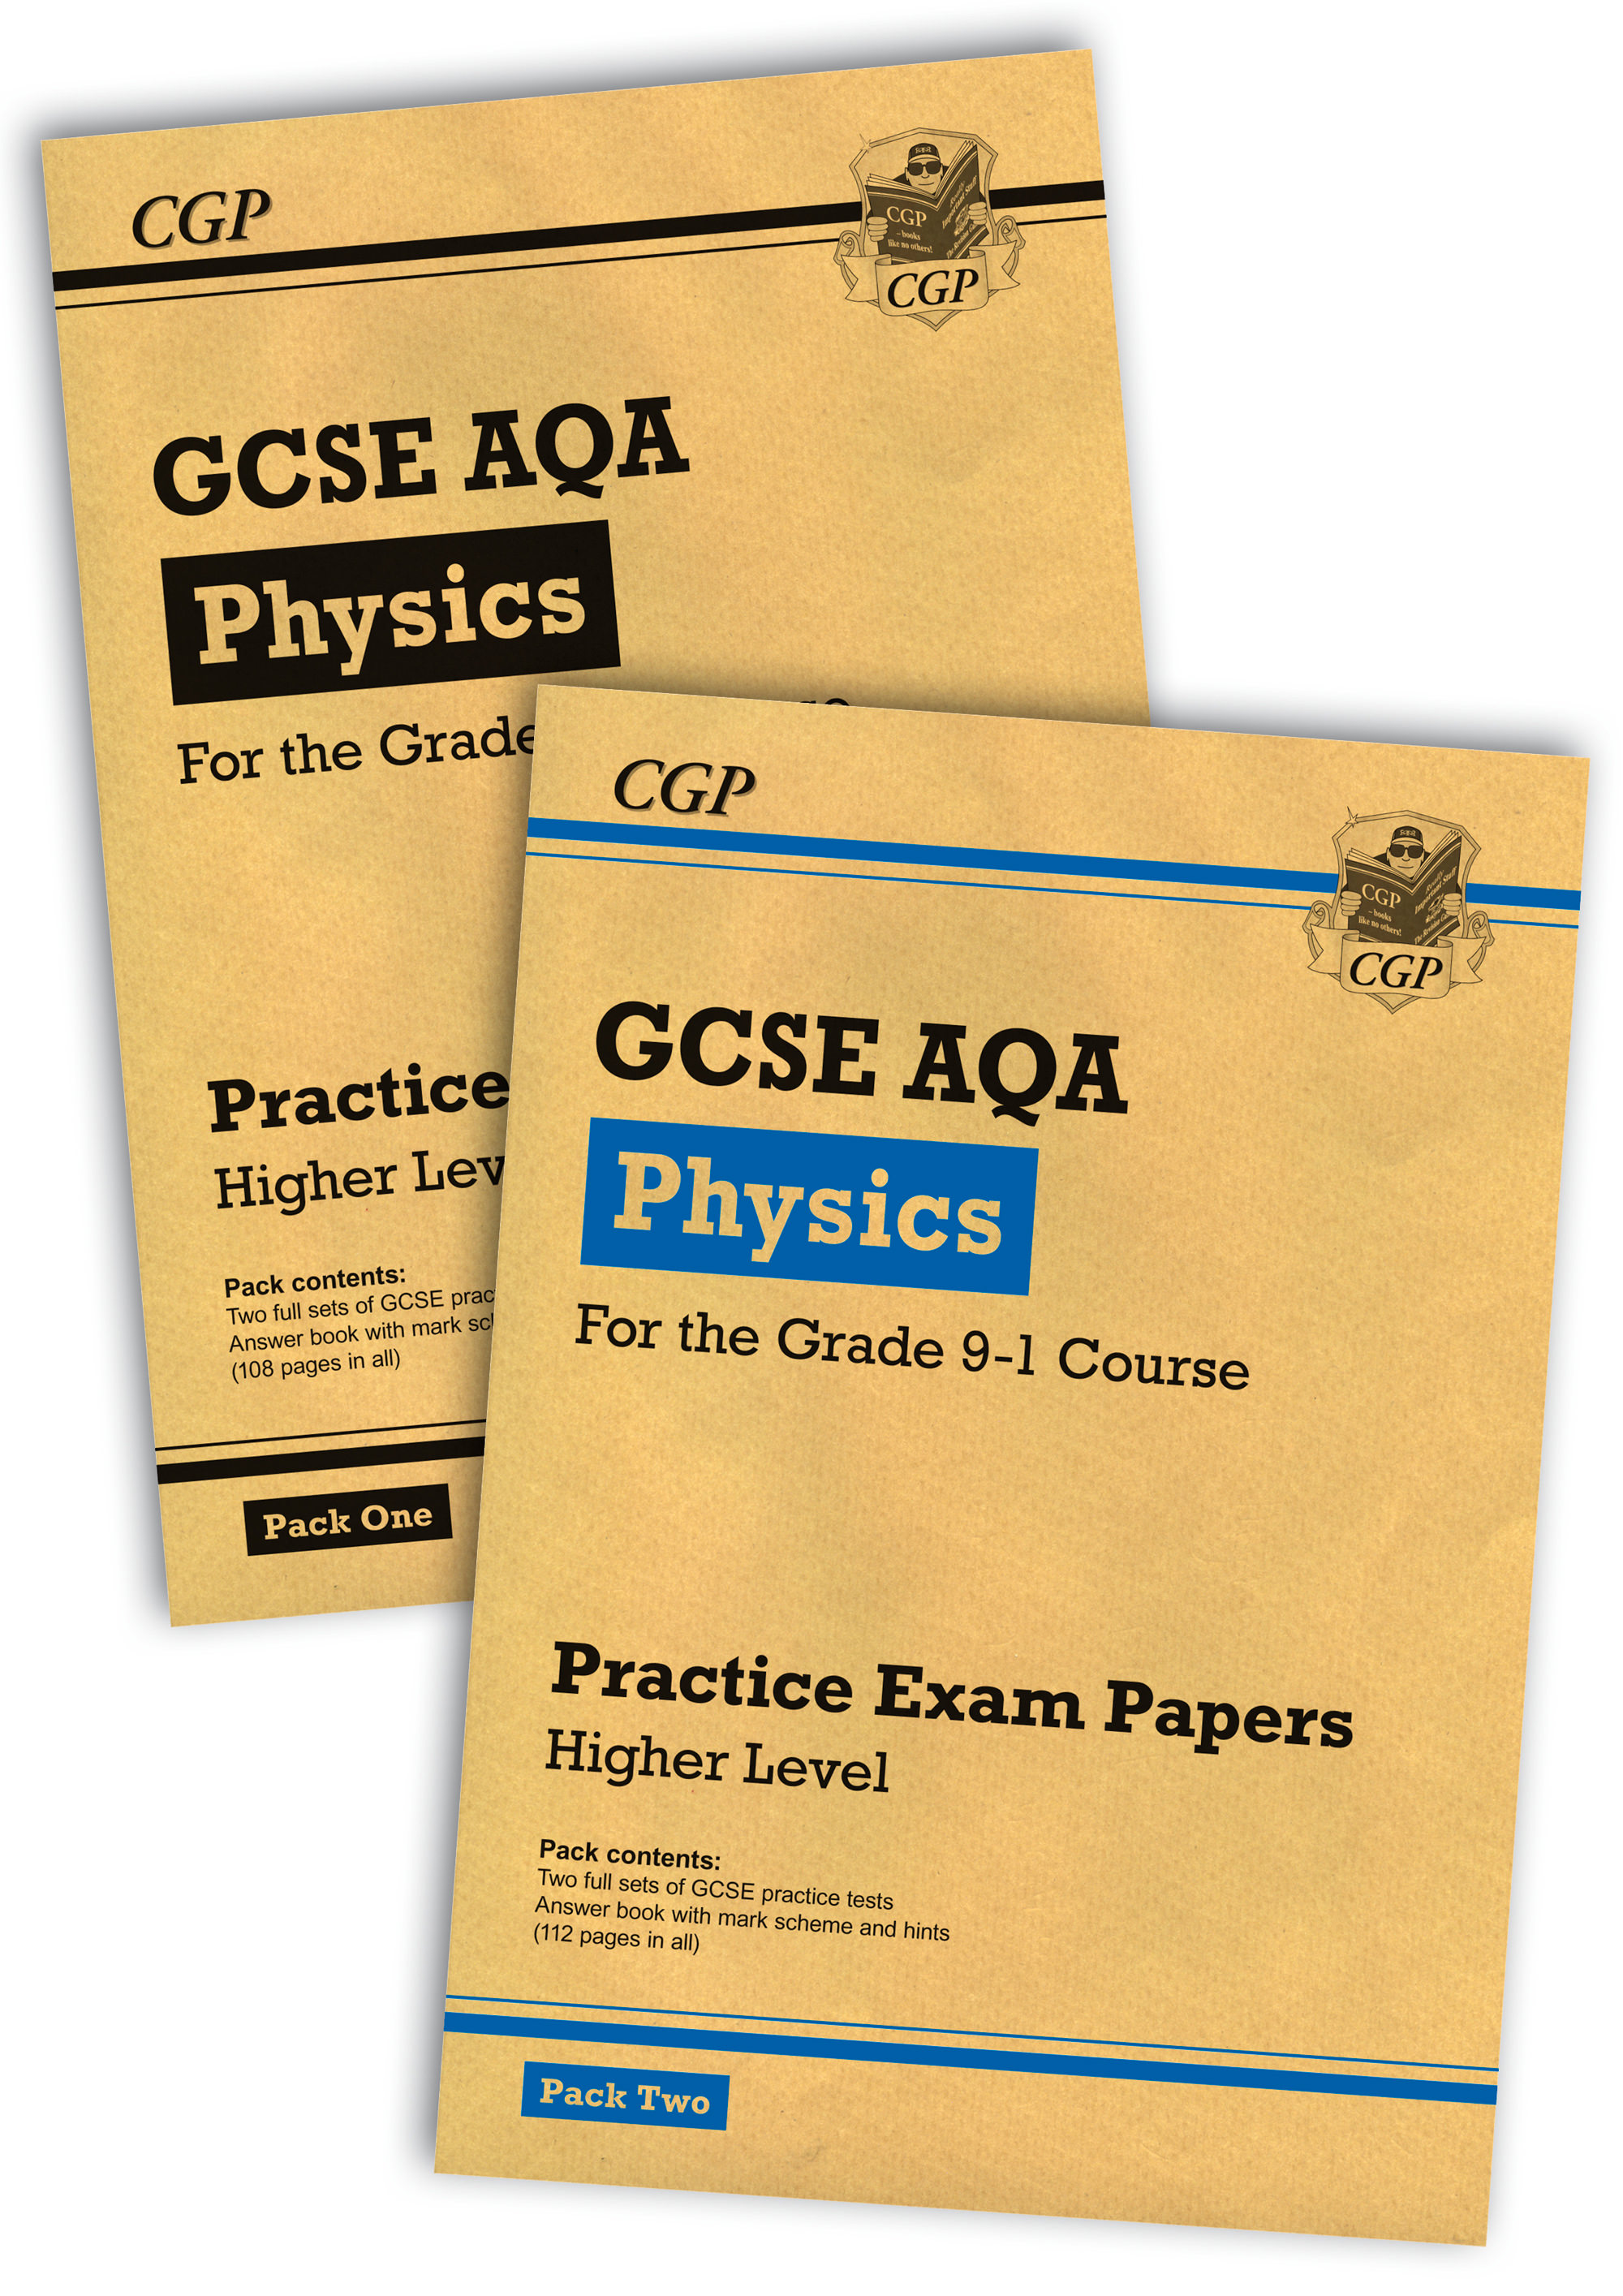 PAHBP41 - Grade 9-1 GCSE Physics AQA Practice Papers: Higher Pack 1 & 2 Bundle